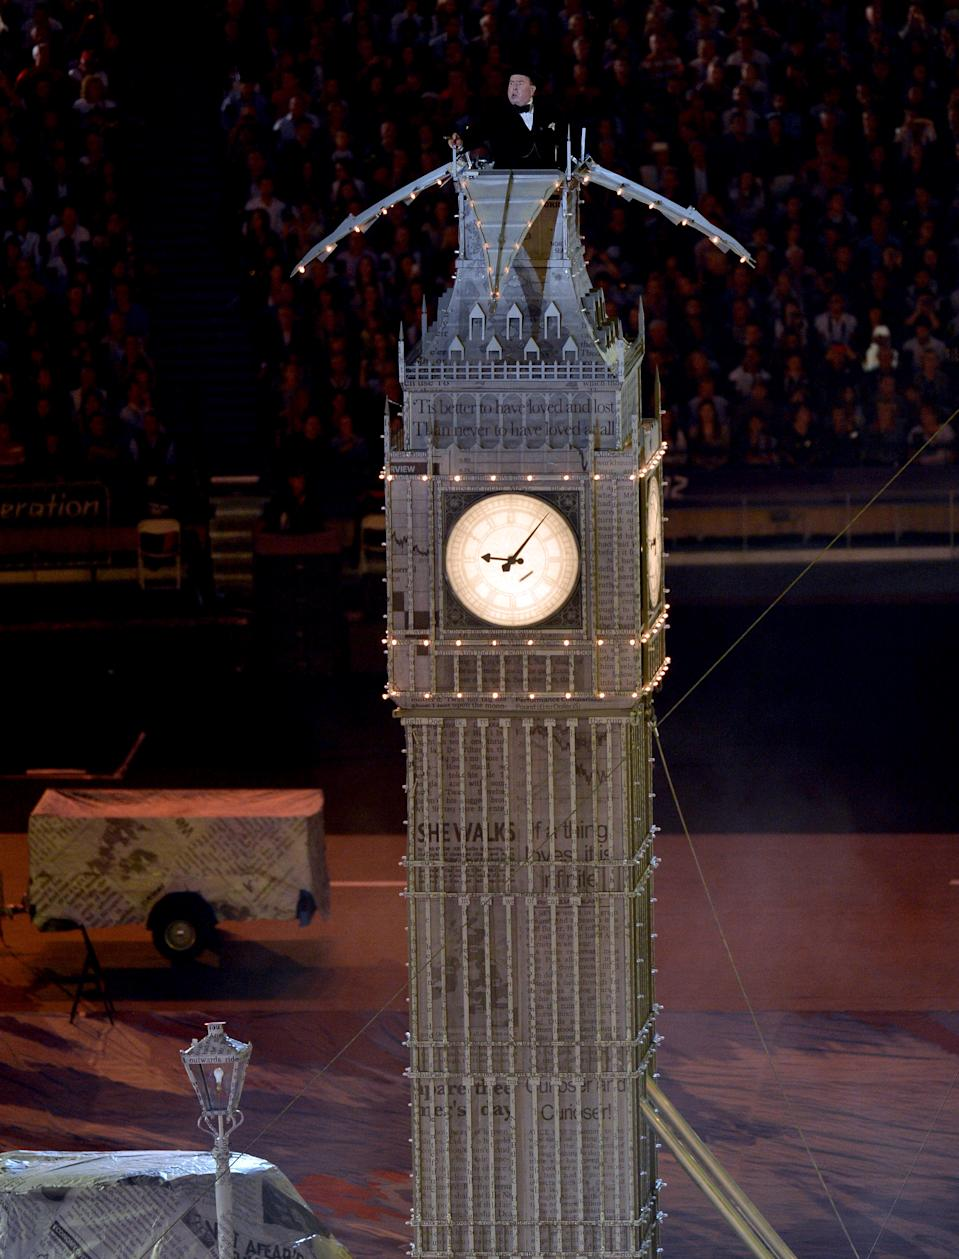 Actor Timothy Spall poses as Sir Winston Churchill during the Closing Ceremony on Day 16 of the London 2012 Olympic Games at Olympic Stadium on August 12, 2012 in London, England. (Photo by Stu Forster/Getty Images)